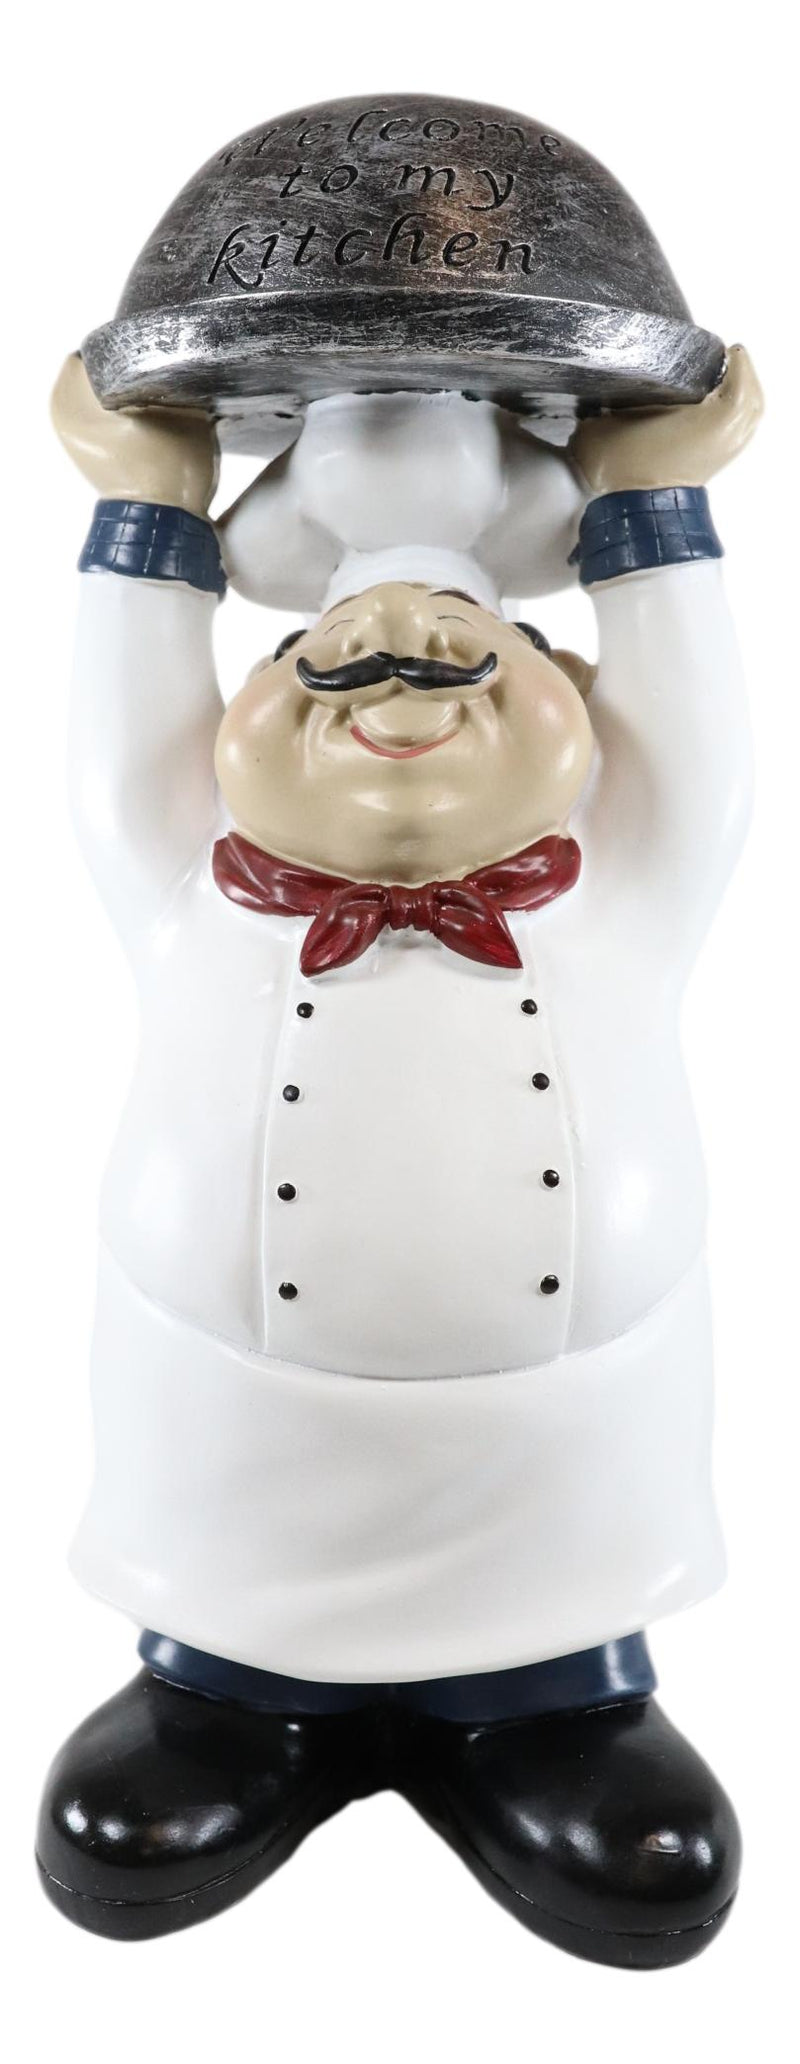 "Ebros Master Bistro Chef Holding Melting Dome Tray Welcome Figurine 14""Tall - Ebros Gift"